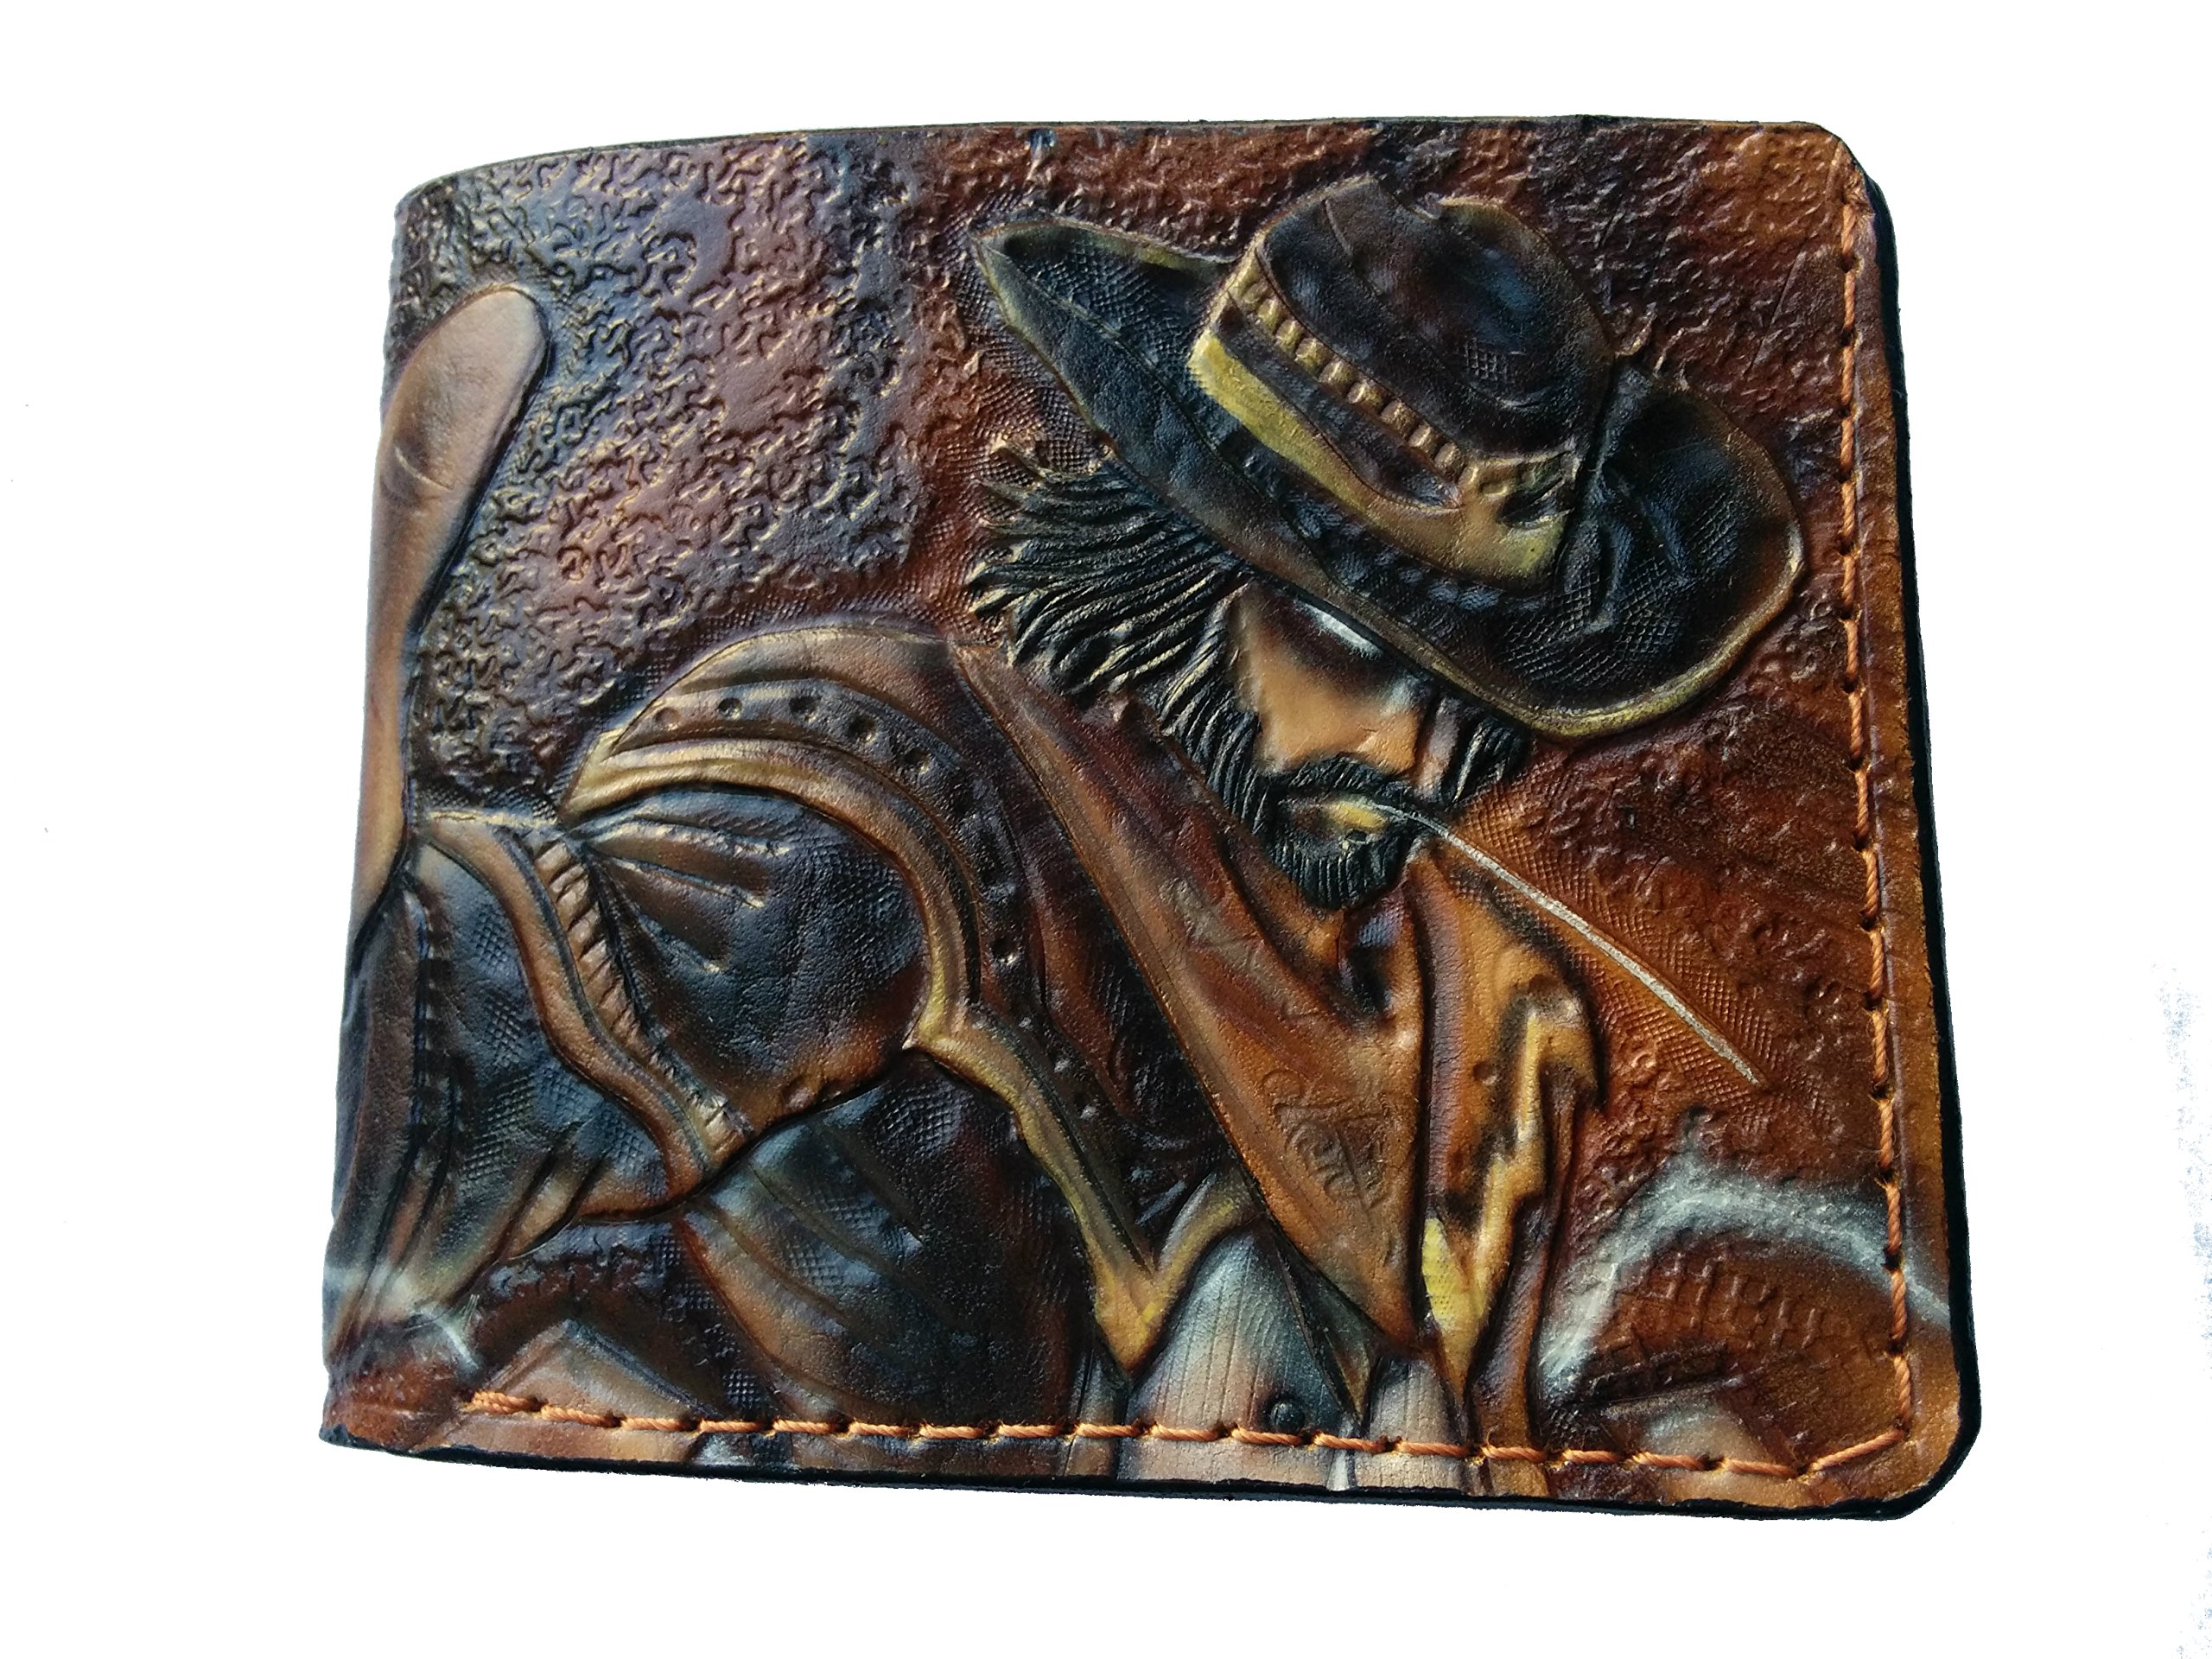 Men's 3D Genuine Leather Wallet, Hand-Carved, Hand-Painted, Leather Carving, Custom wallet, Personalized wallet, League of Legends, Twisted Fate, The Card Master, Cowboy